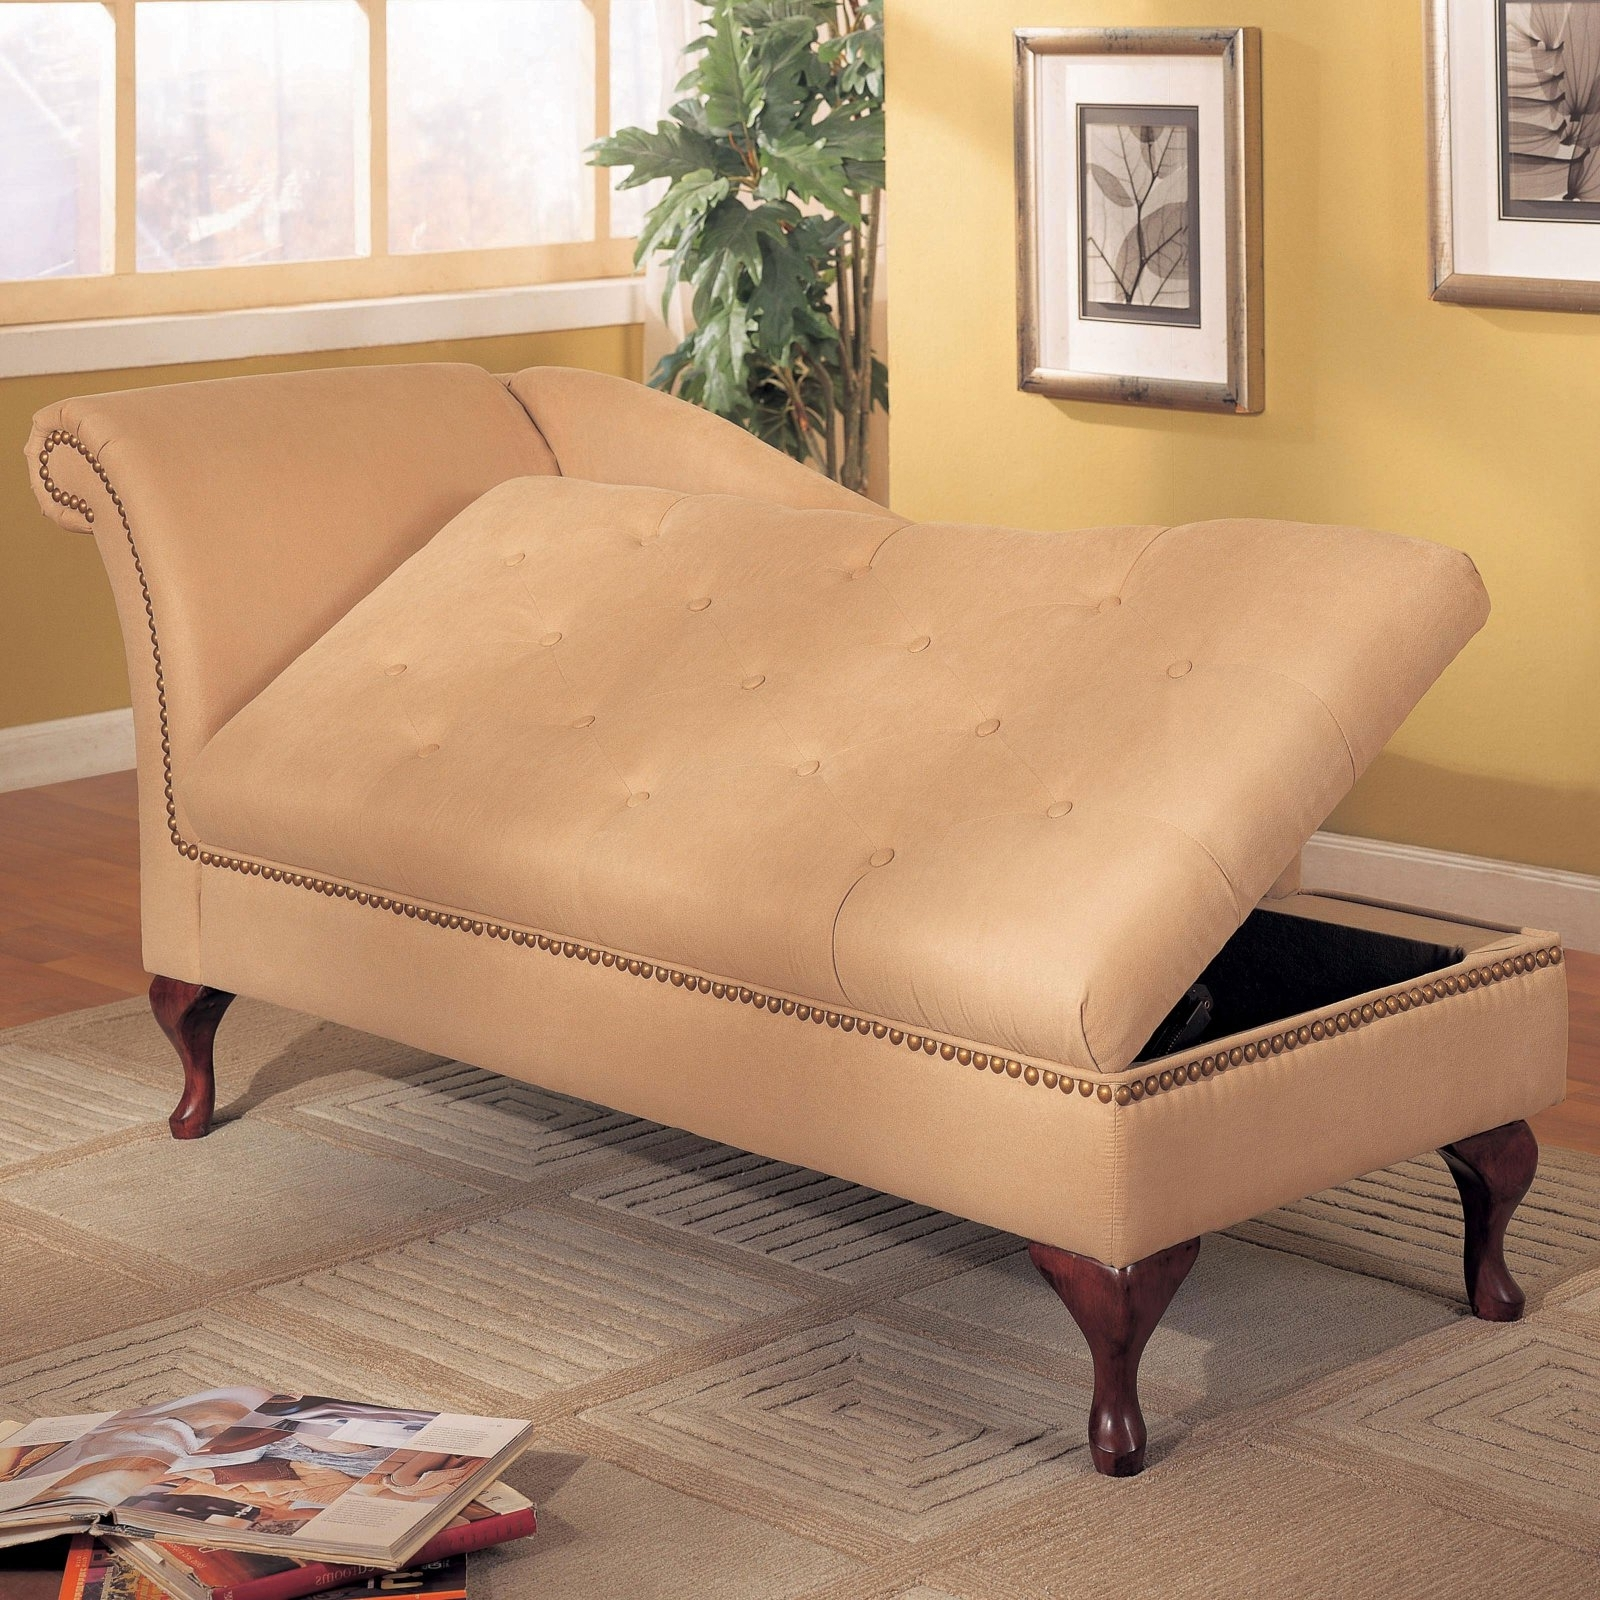 2018 Small Chaise Lounges With Small Bedroom Chaise Lounge Chairs • Lounge Chairs Ideas (View 7 of 15)